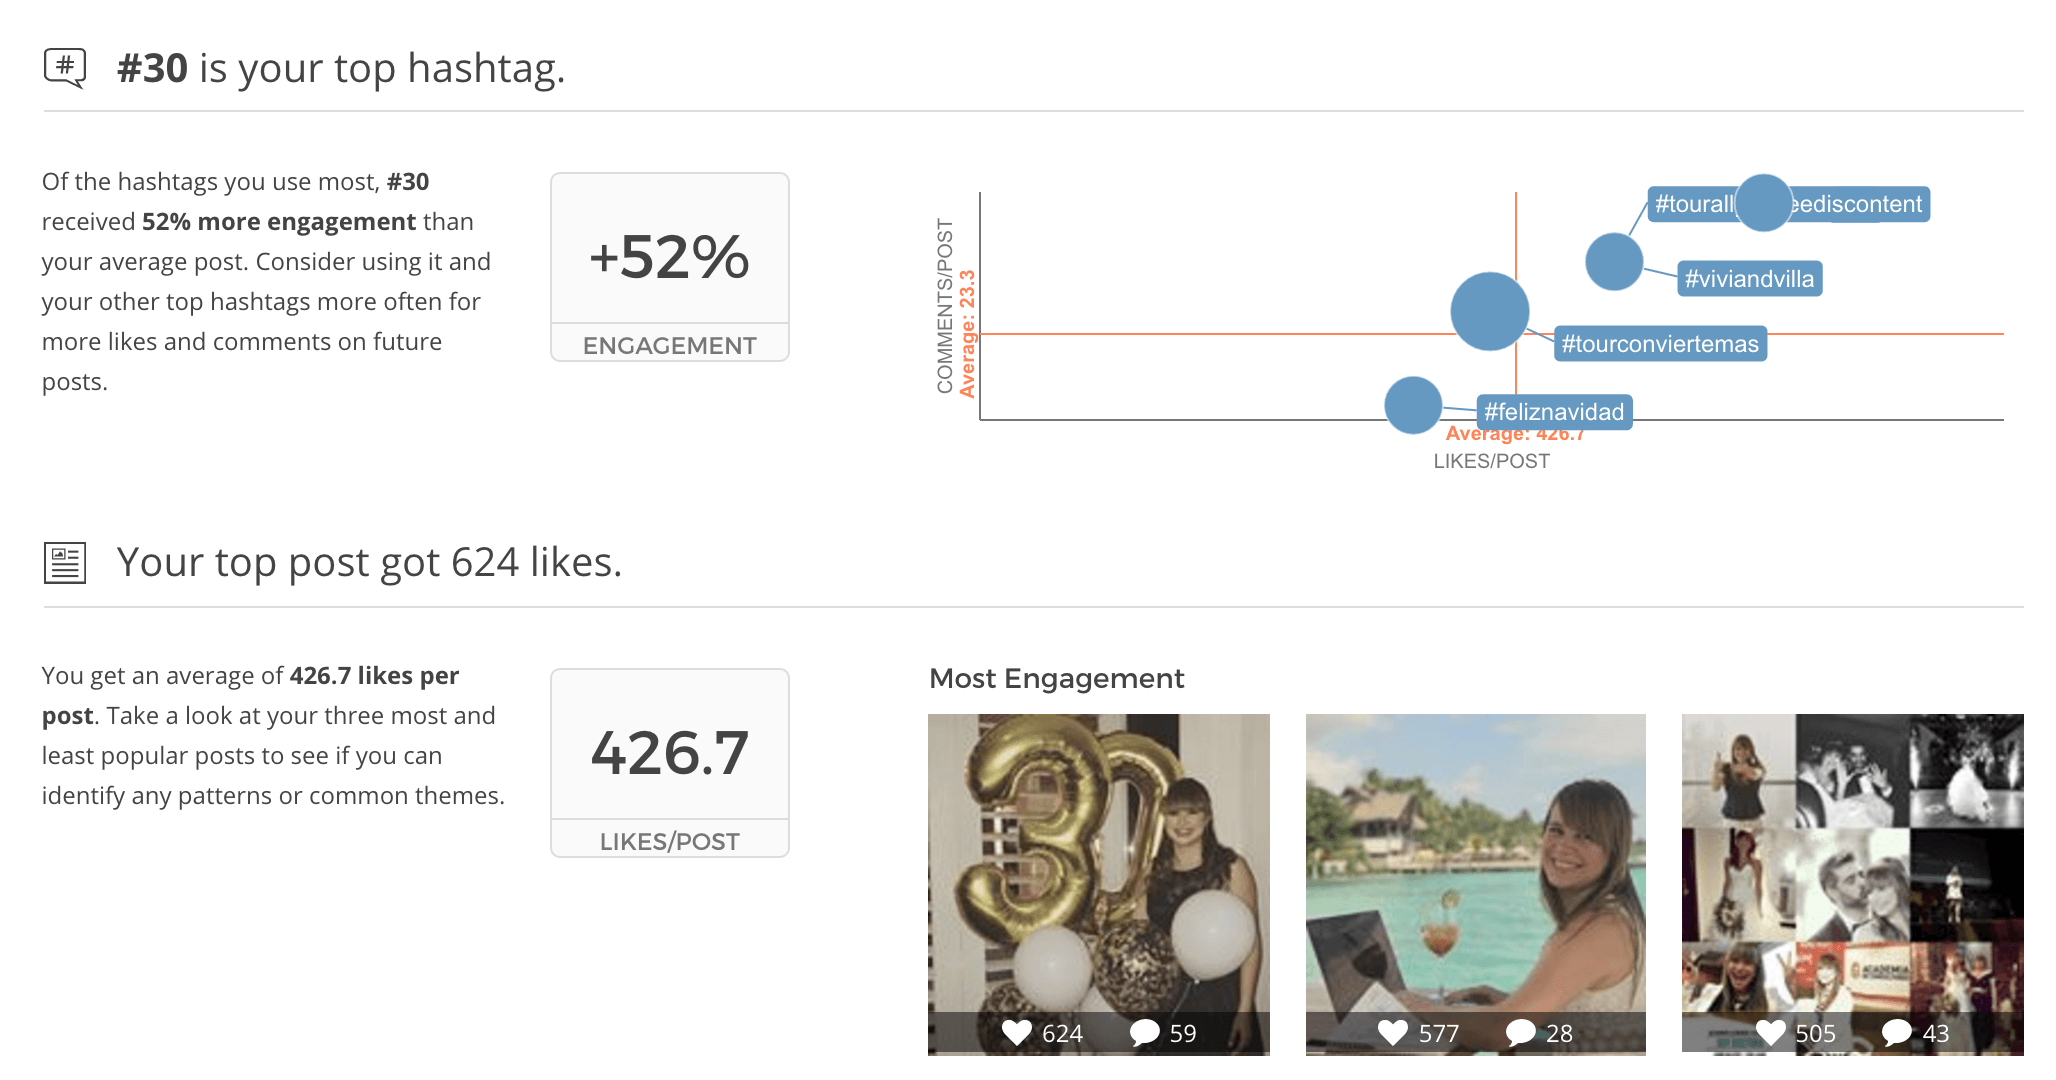 mejora-engagement-instagram-union-metrics-informe-instagram